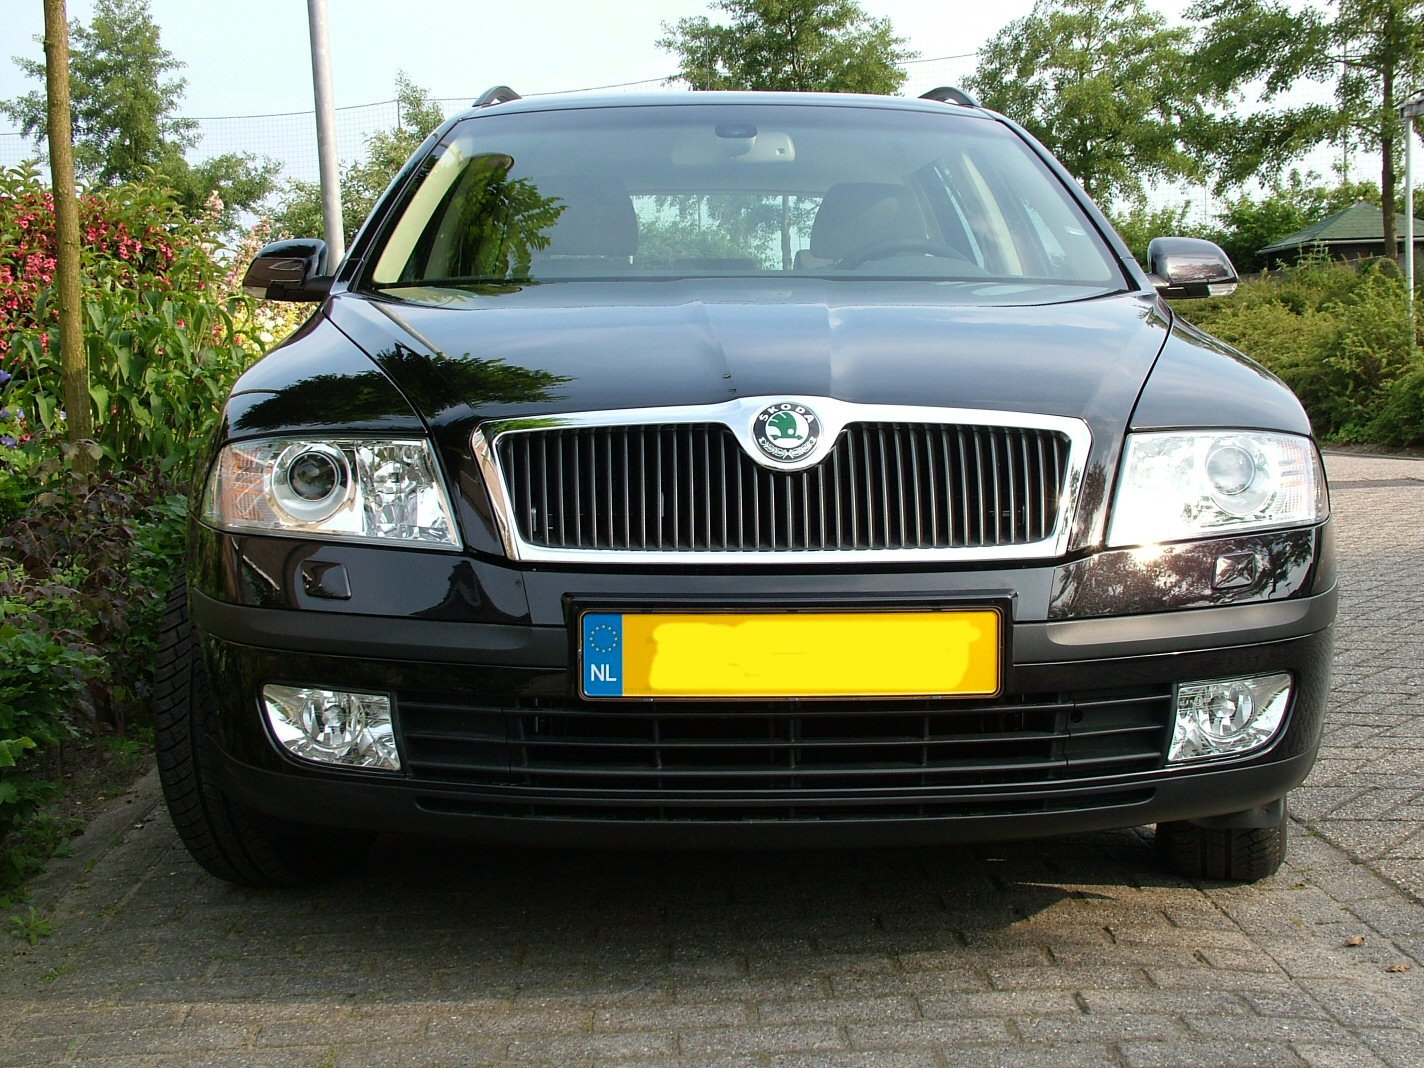 https://upload.wikimedia.org/wikipedia/commons/8/85/Skoda_Octavia_II_front.jpg